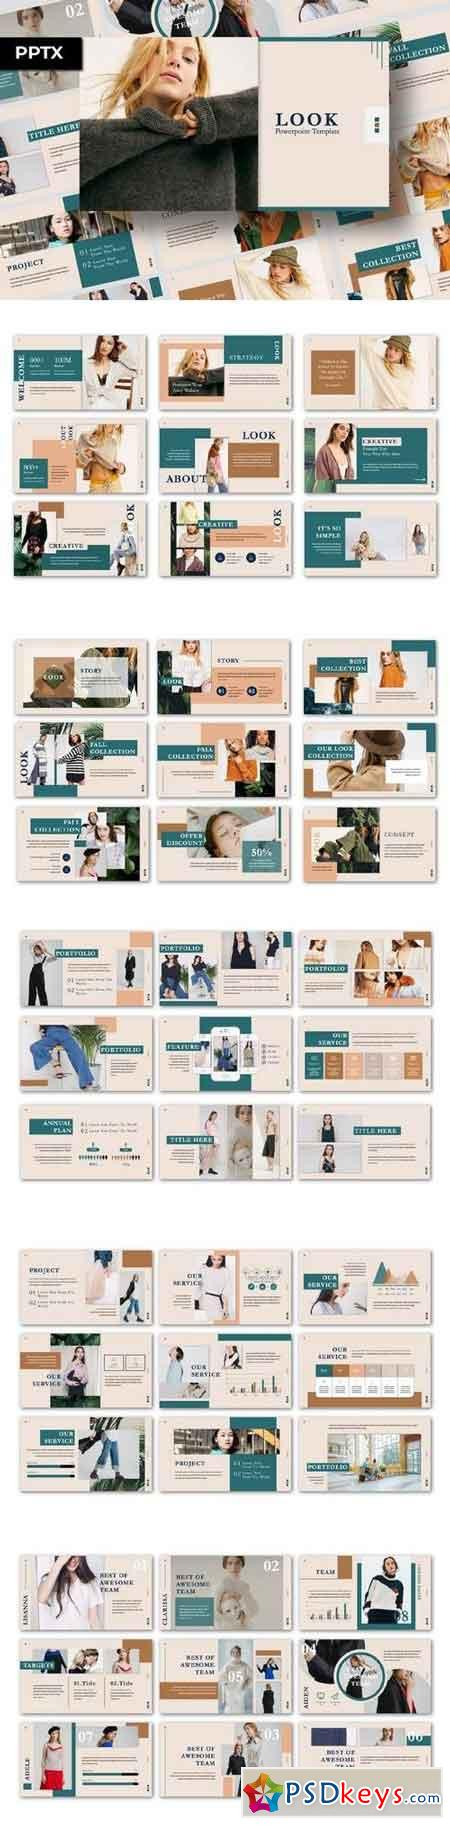 Look Presentation - Powerpoint&Keynote Template